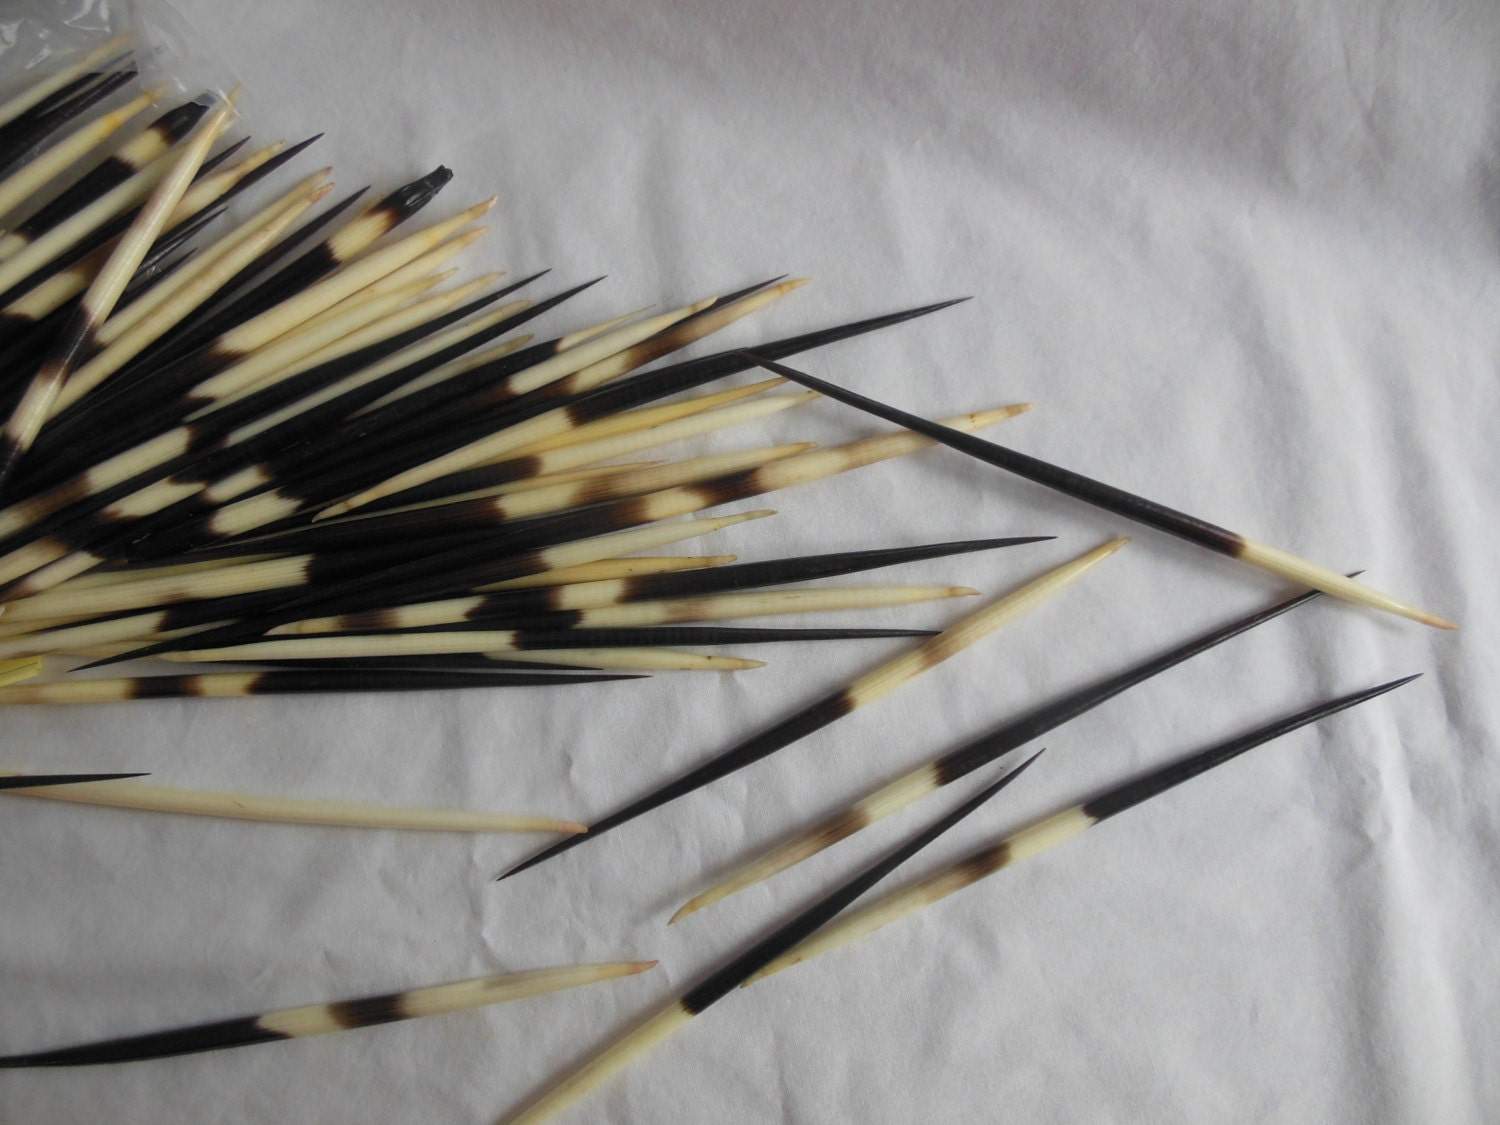 South African Porcupine Quills 7 12 Three quills